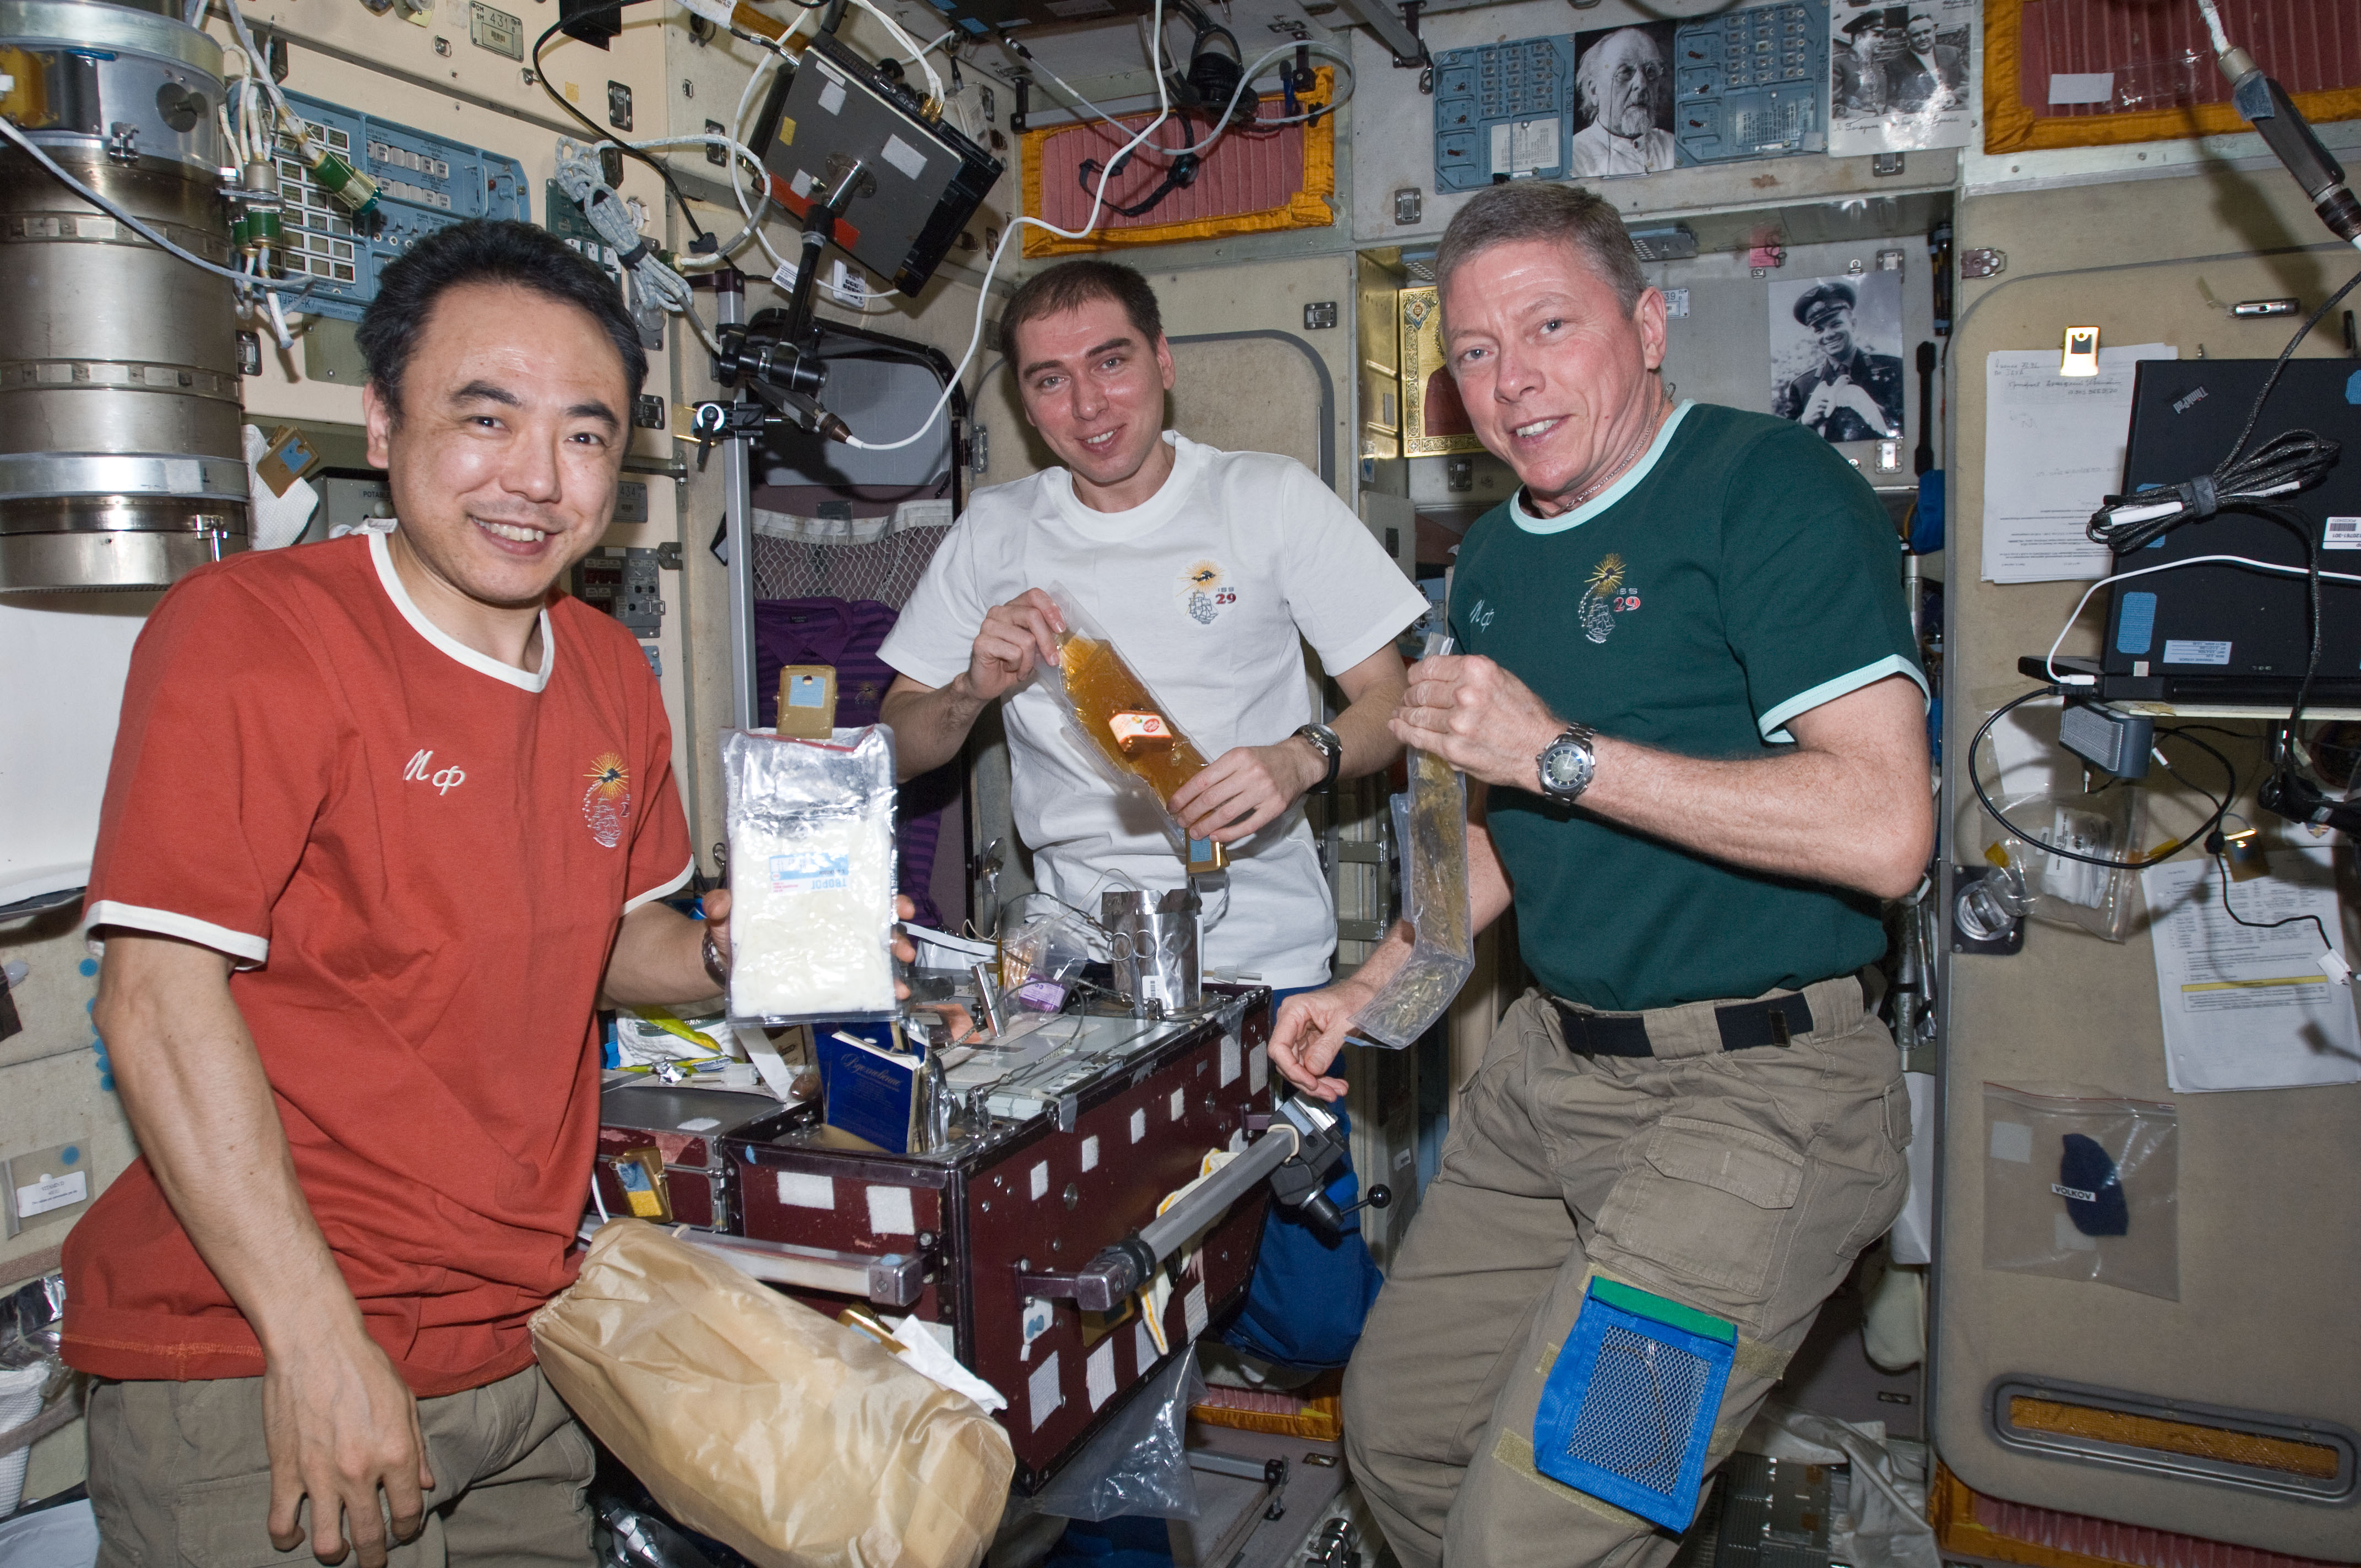 Expedition 29 Crew Members Share a Meal